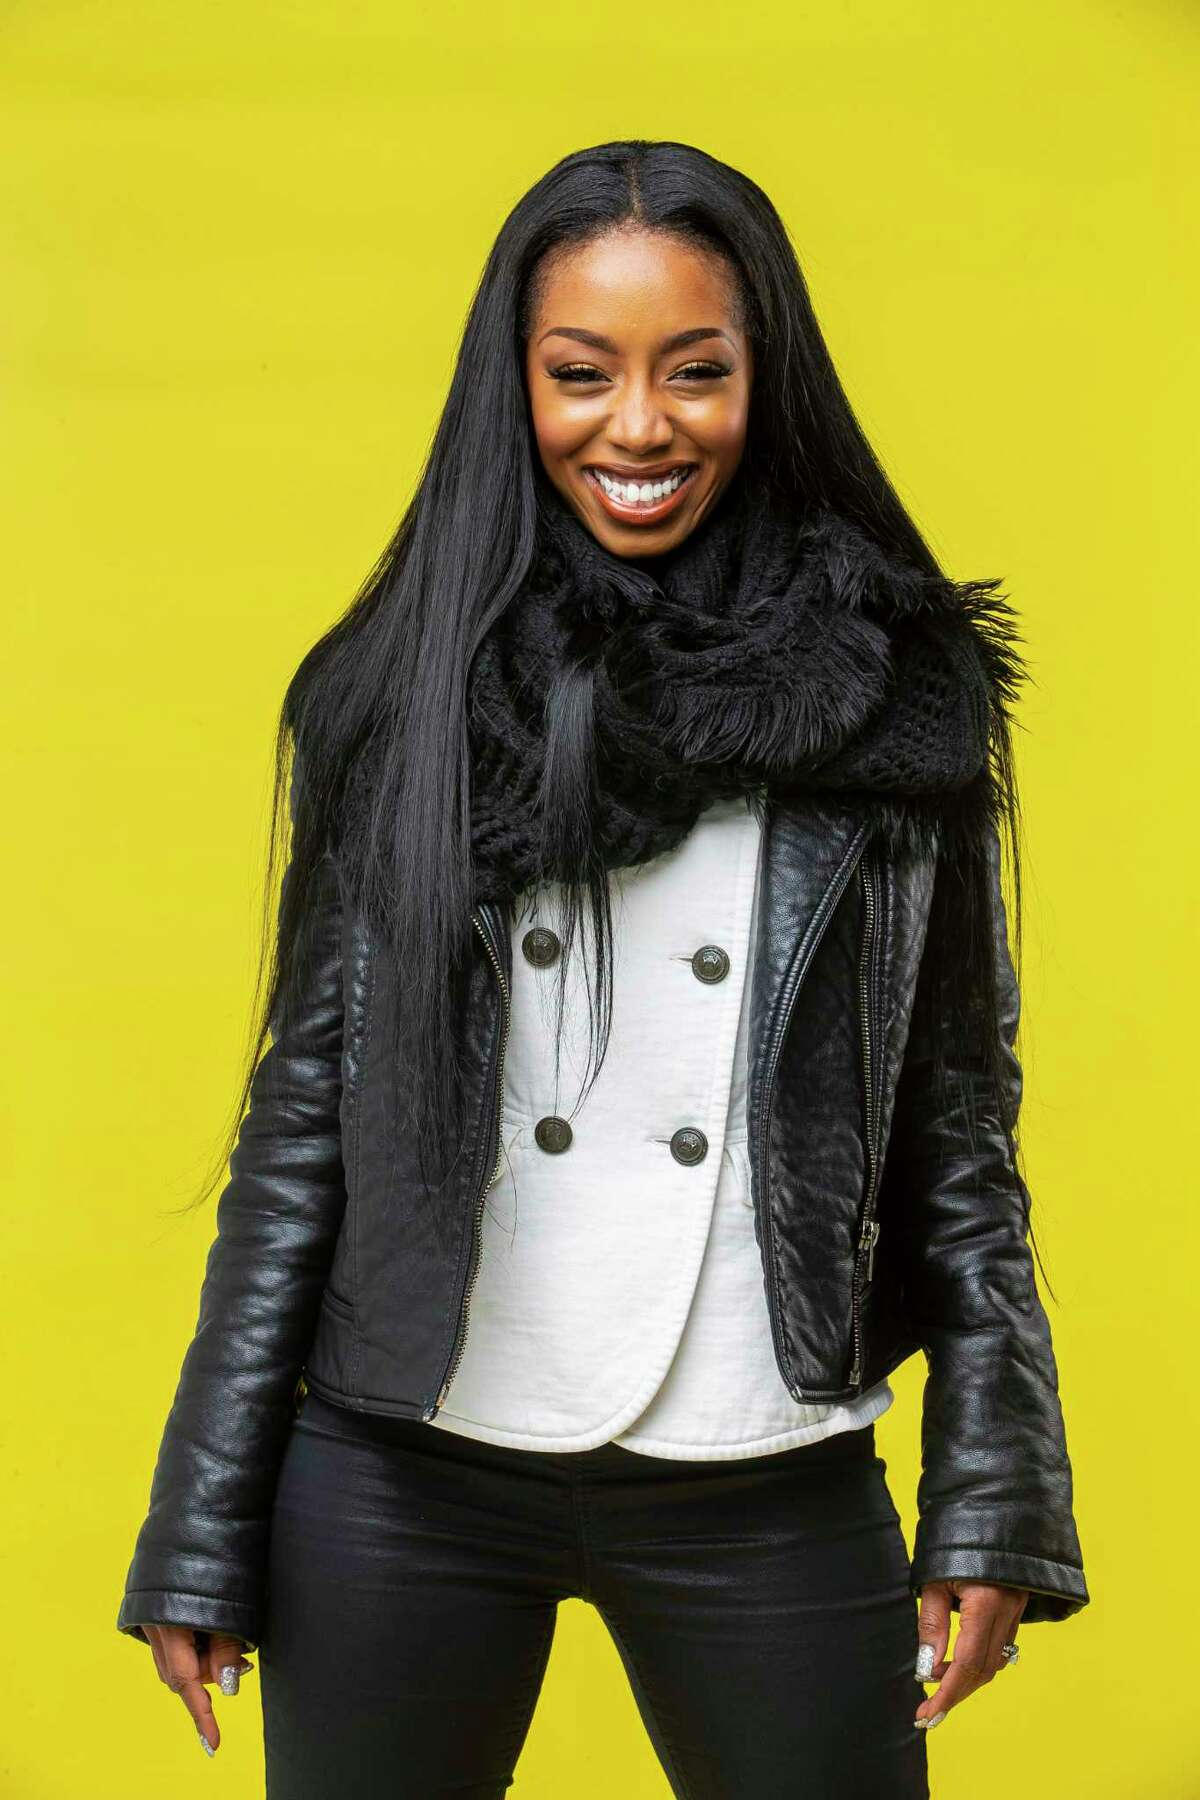 Singer Crystal Tamar, a former Houston Texans cheerleading captain who was also a member of the T-Pain produced group Sophia Fresh, recently release her eponymous solo album. The graduate of Prairie View A&M was photographed in the Houston Chronicle studio in Houston, Wednesday, Dec. 4, 2019.